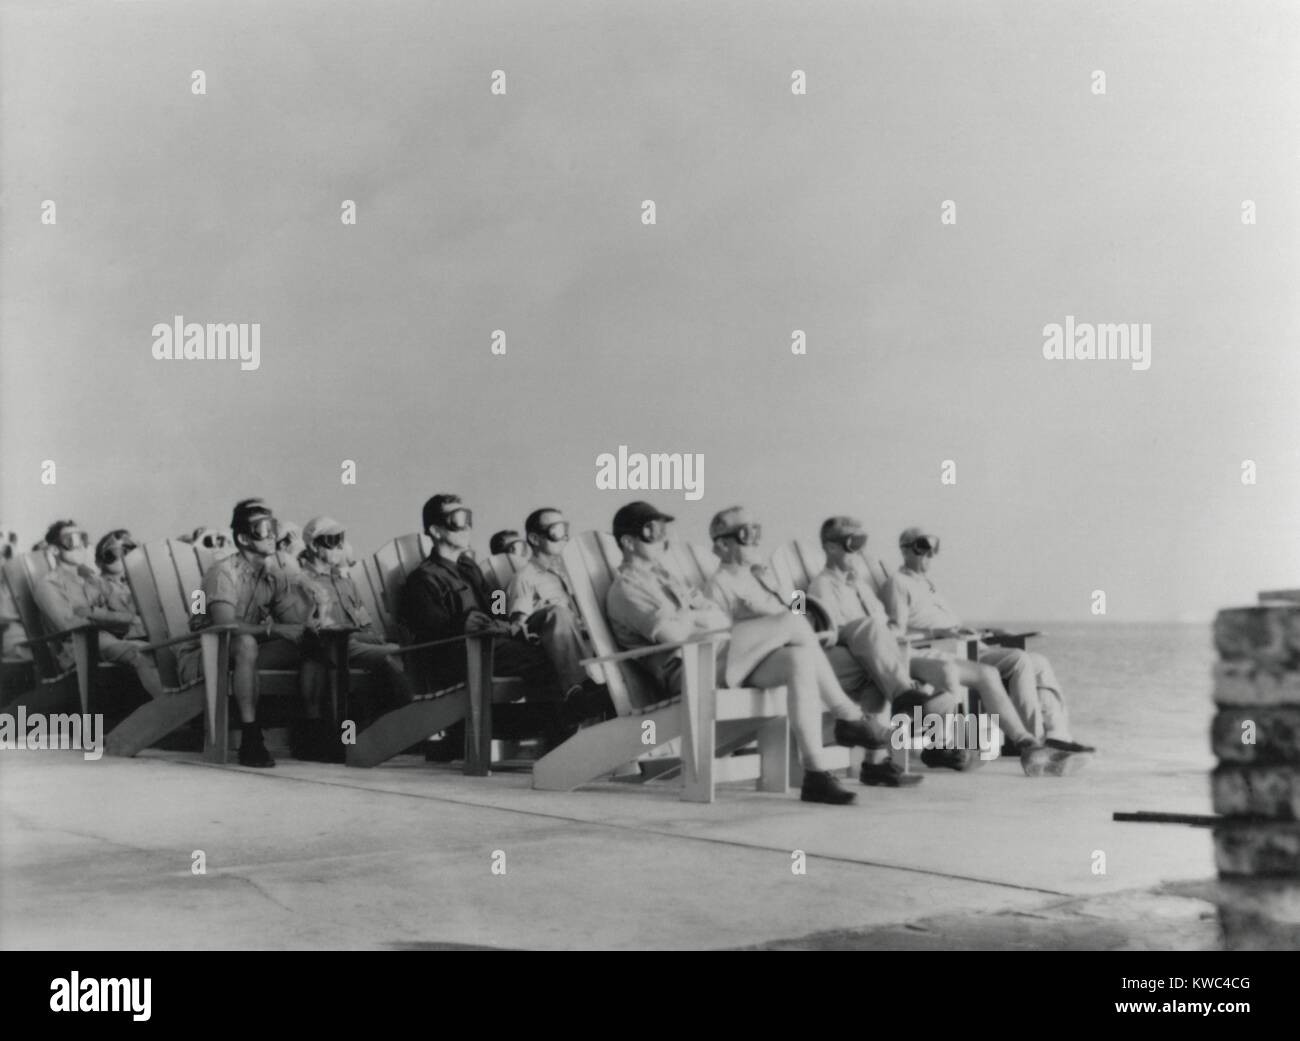 VIPs view the DOG shot, an 81 kiloton atomic detonation wearing safety goggles. They are sitting on Adirondack chair Stock Photo